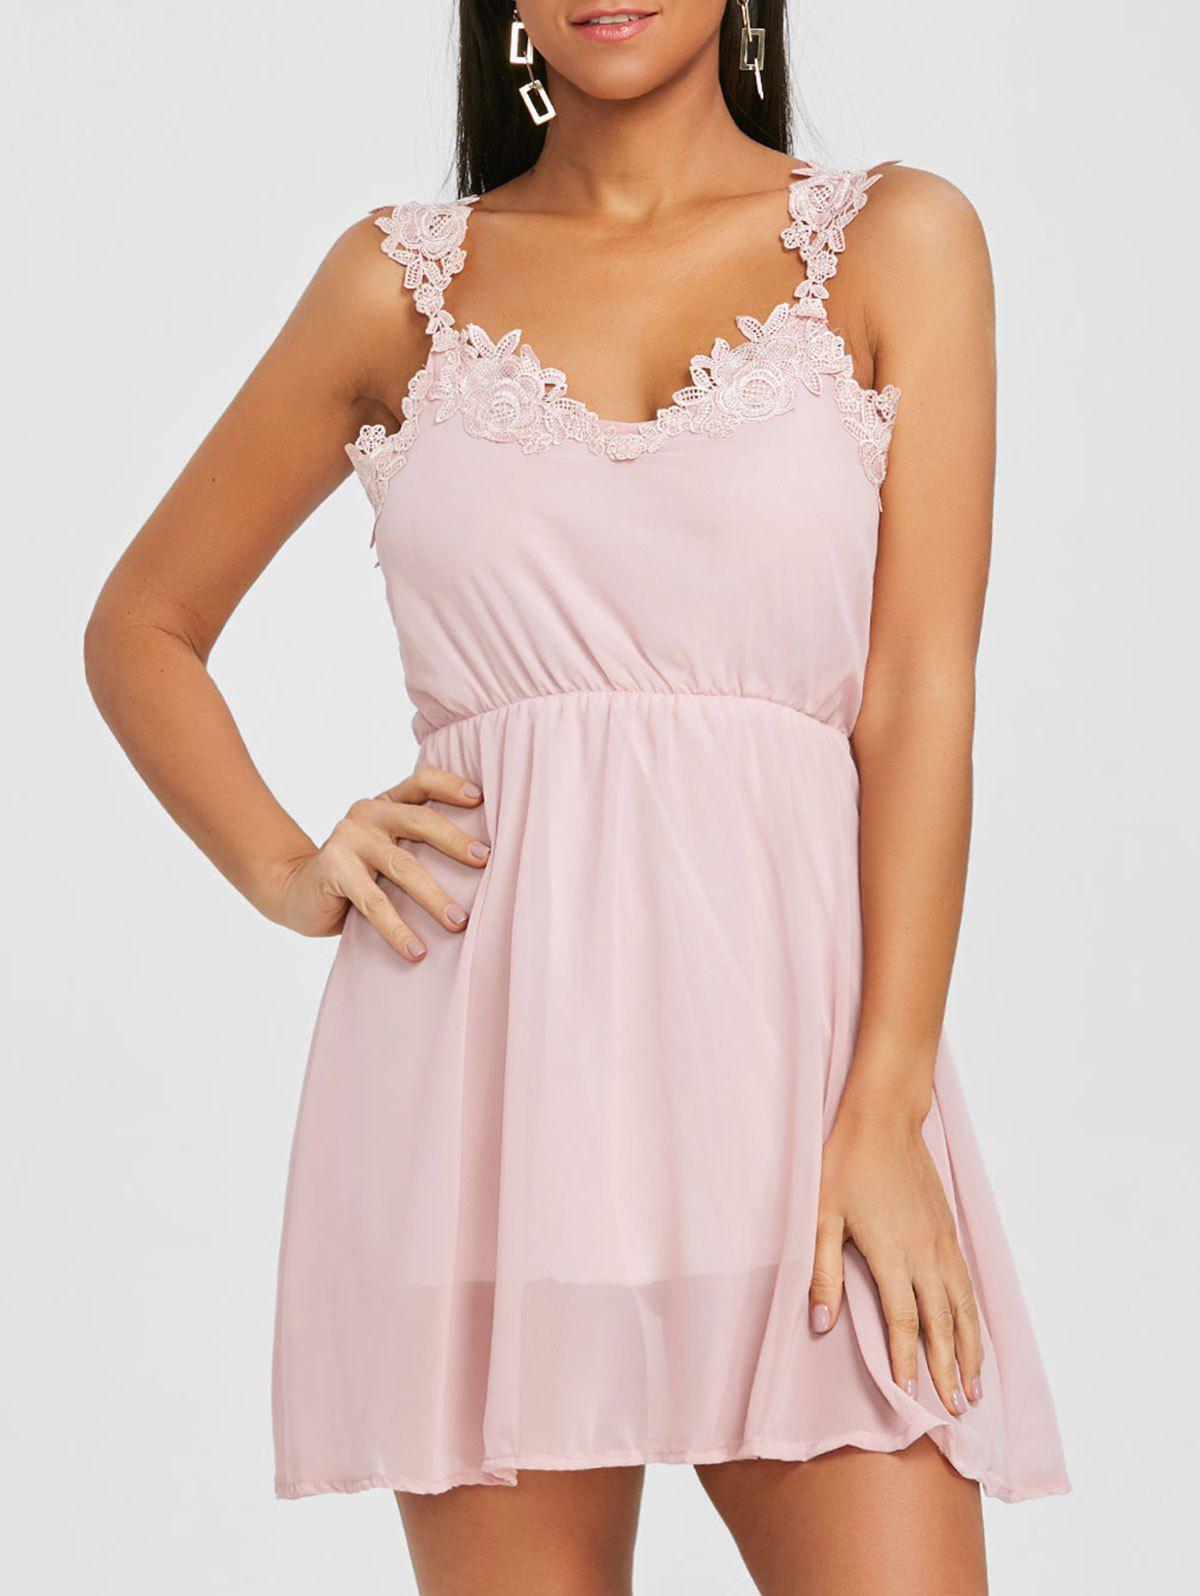 New Lace Insert Chiffon Flare Dress